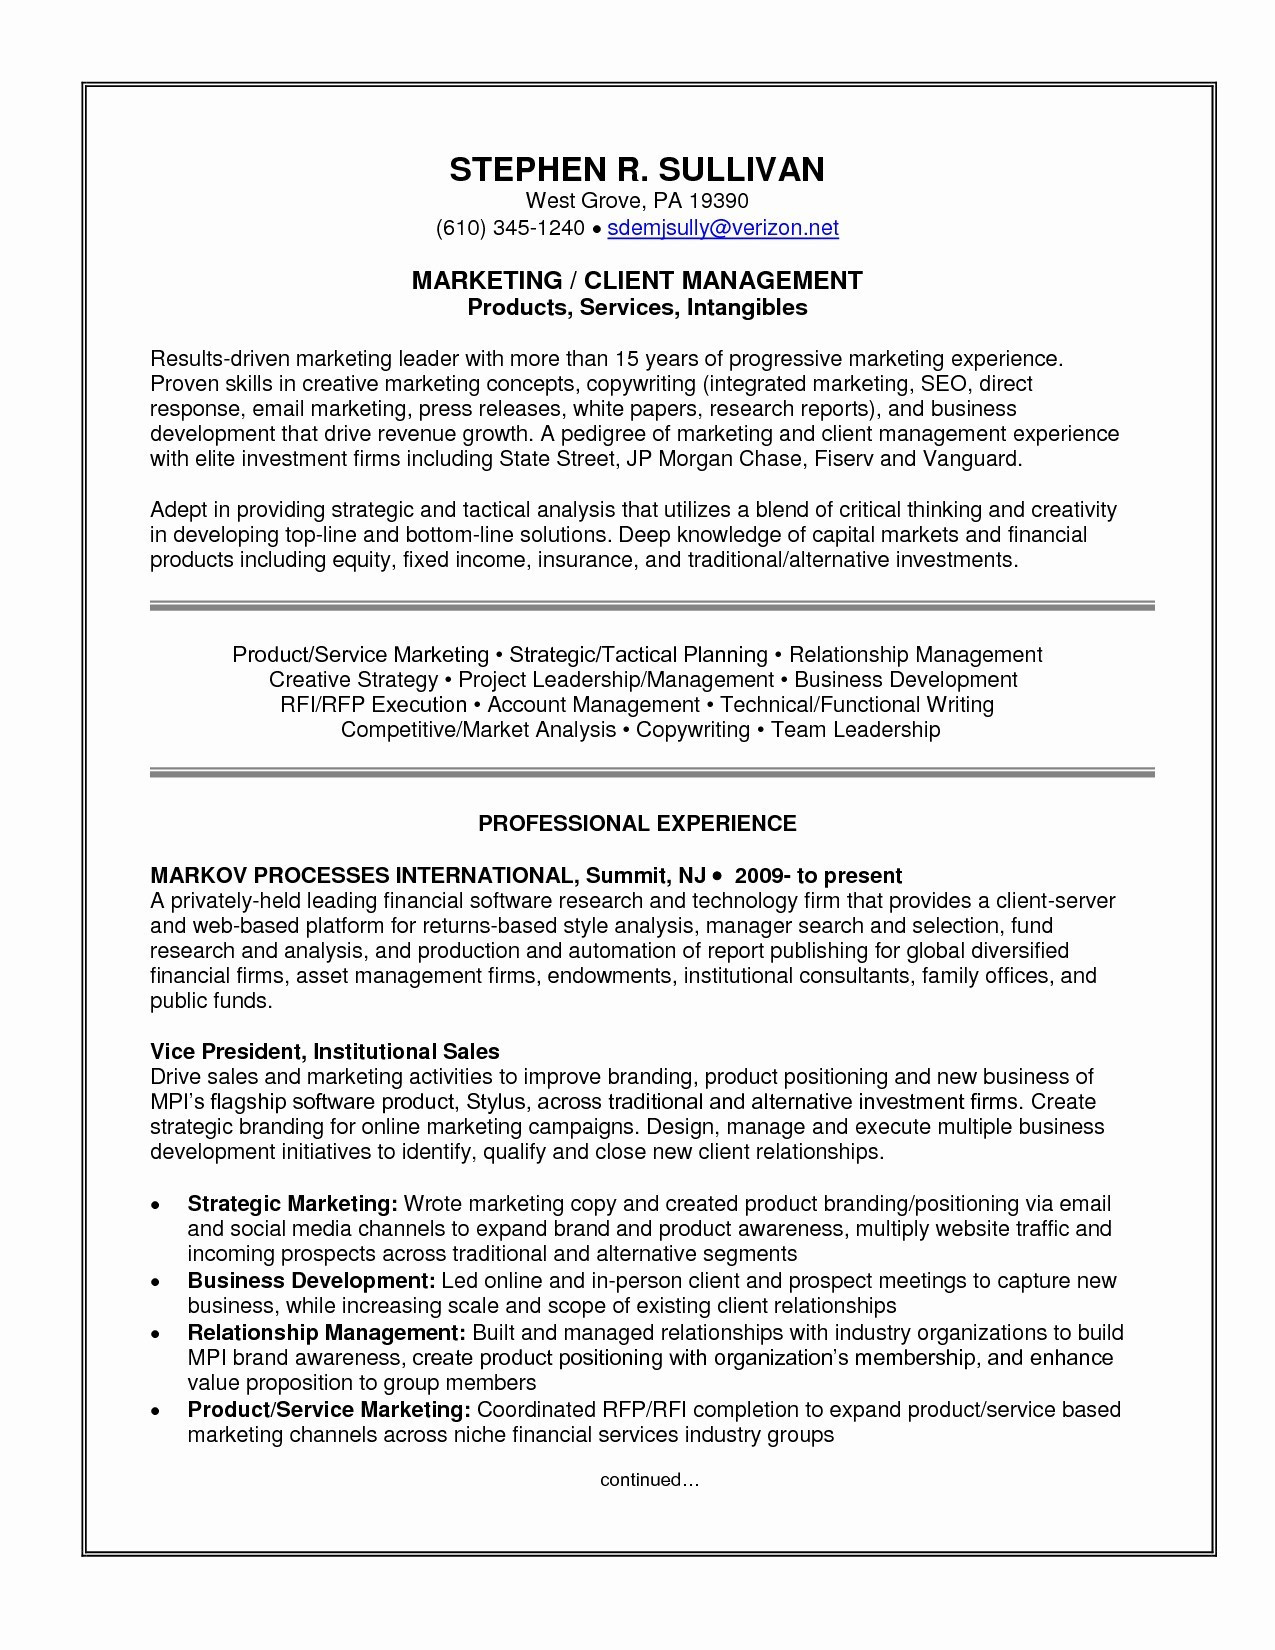 Marketing Skills Resume - Experienced Professional Resume Template Best top Resume Template